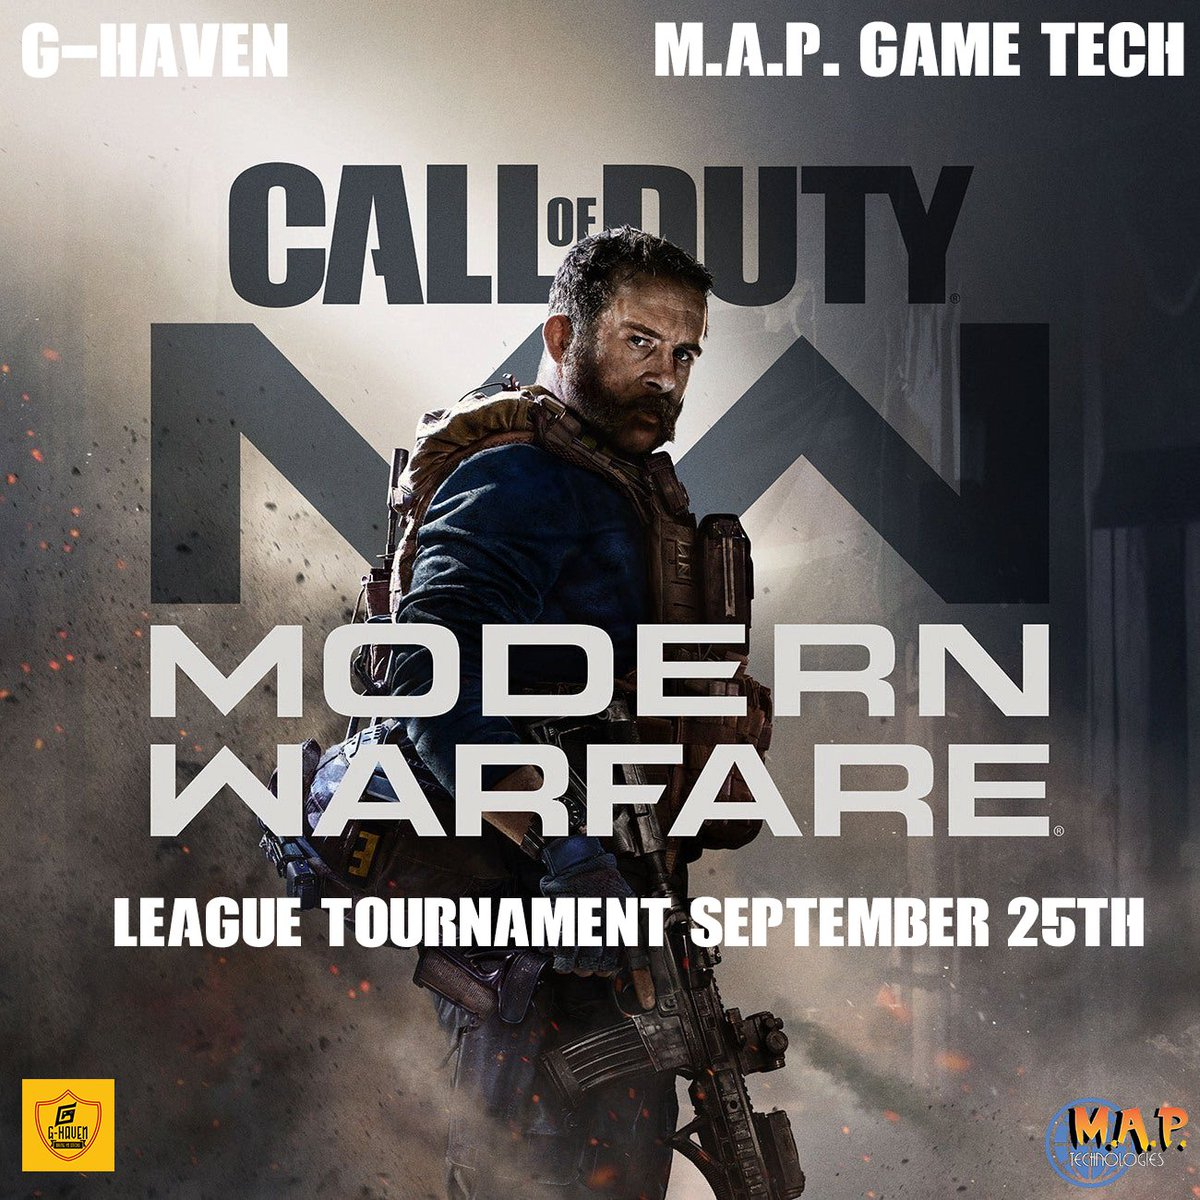 You think you can take on our pro team in COD Warzone?! Come at us and Bring Yo Sticks!!! DM us to challenge the team #BringYoSticks #gaming #GhavenEsports #gamer #twitchstreamer #xbox #Monster #Activision #RedBull #ElectronicArts #Gamestop #Honda #cod #CoD2020 #CoDMW https://t.co/iLPow3n6tH